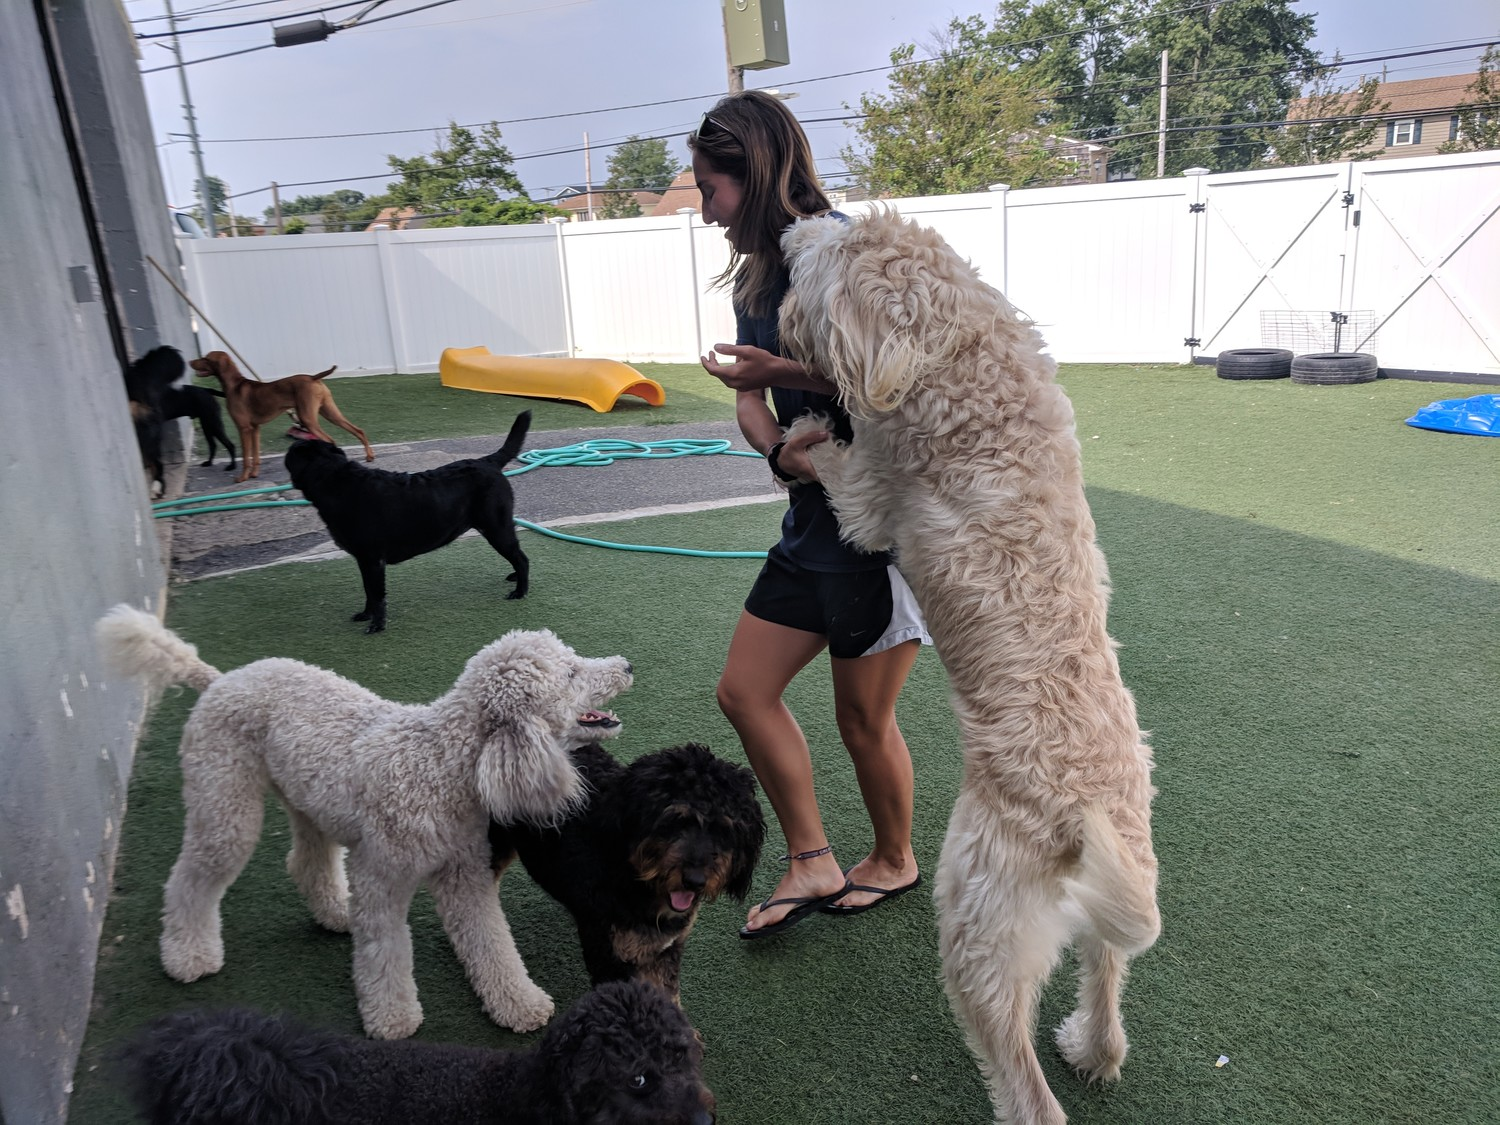 "At Hounds Town USA in Island Park, the dogs being cared for are not kept in kennels and are allowed to roam free in the backyard, playing with each other. ""No collar, no rules,"" said employee Courtney Sills."